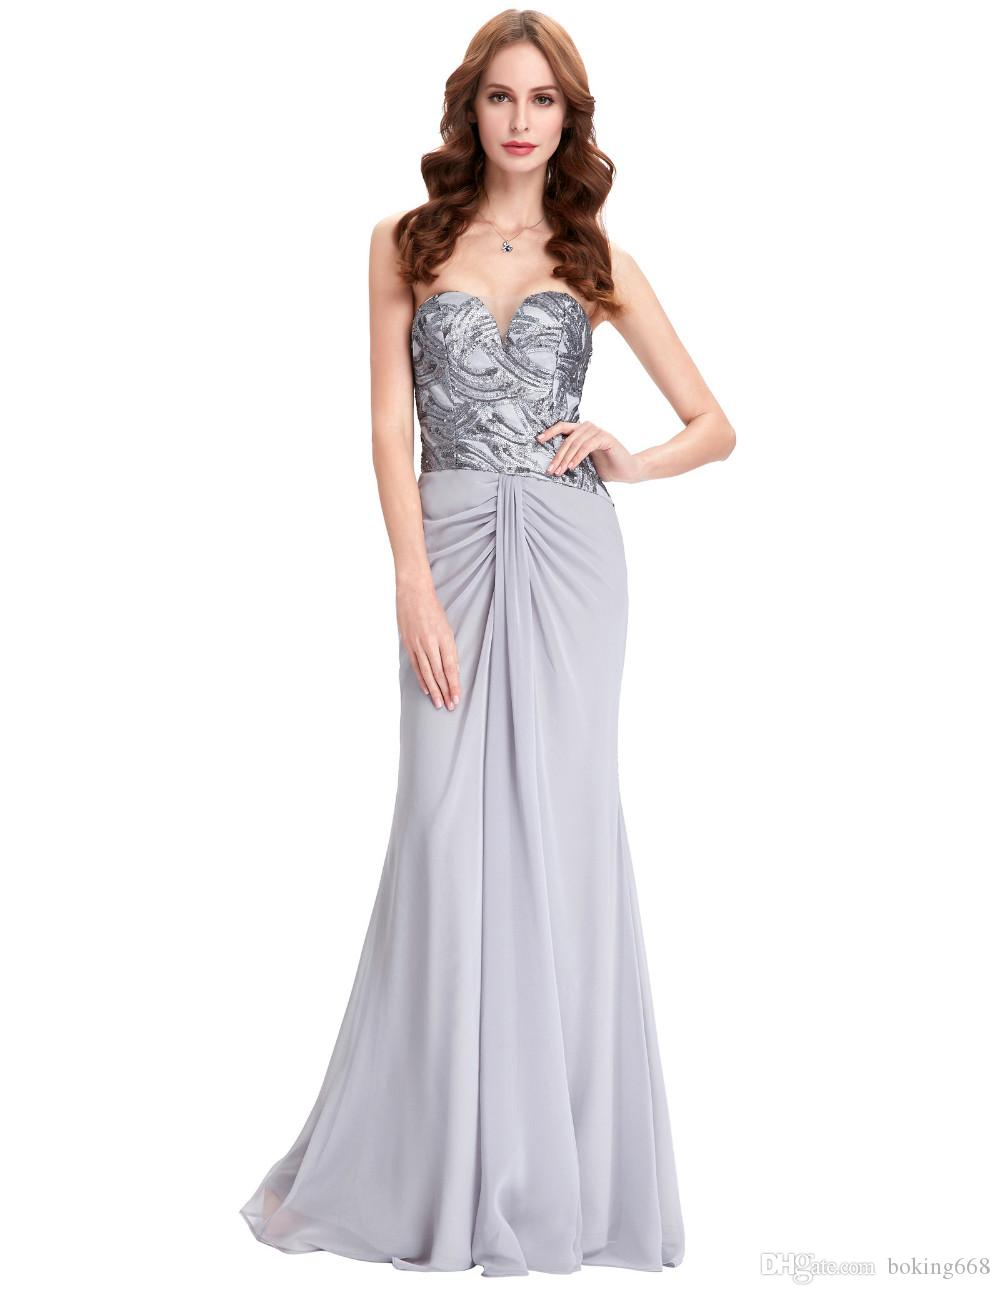 2018 Long Grey Prom Dresses Cheap Sequin Dress Elegant Chiffon Sleeveless  Celebrity Party Dress Arabic Robe Mermaid Prom Gowns Prom Dresses Under 300  Purple ... 84bd093f2